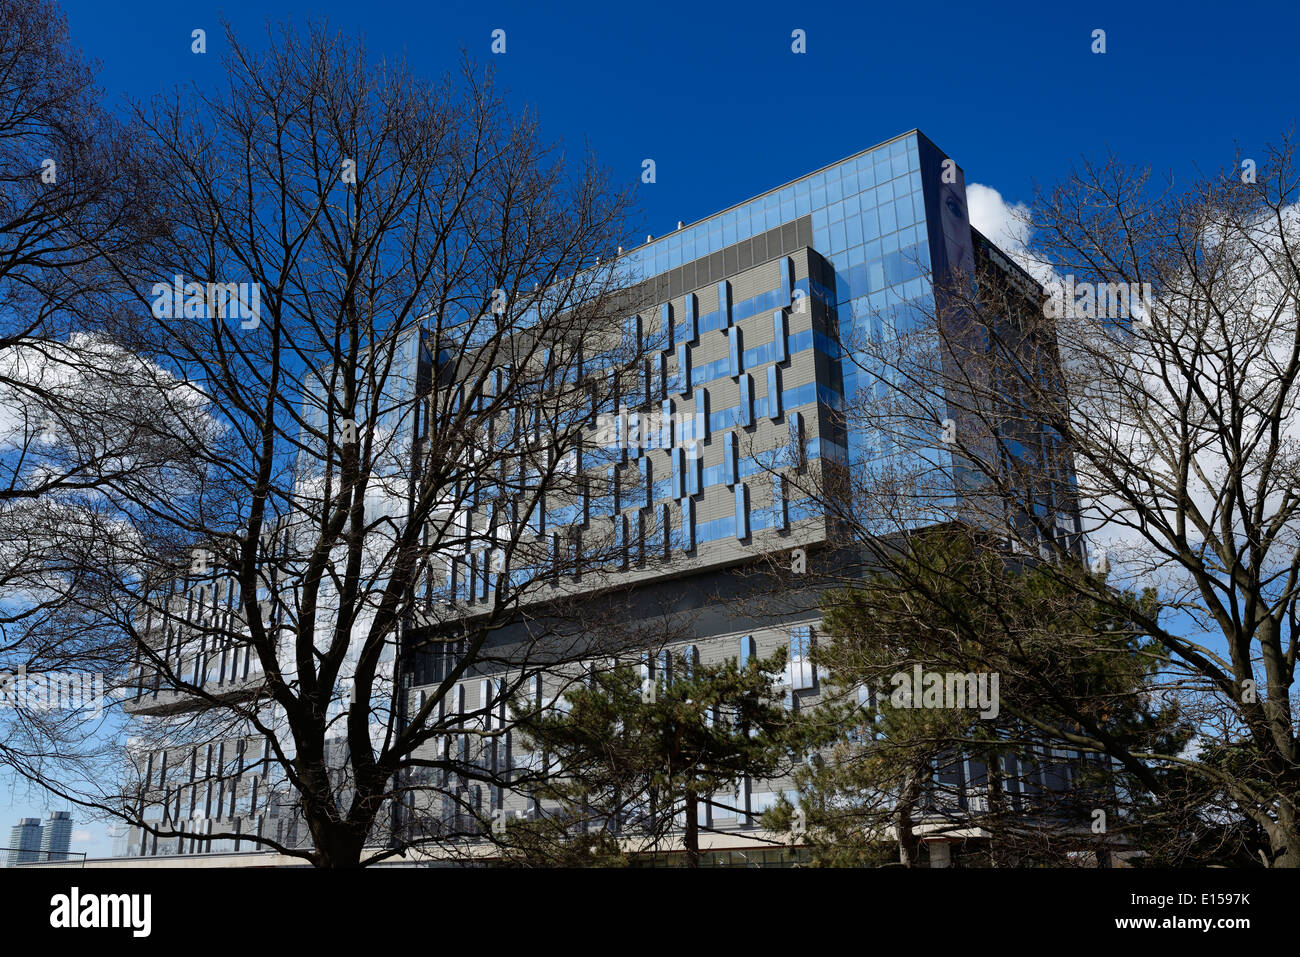 Newly constructed blue Hospital Bridgepoint Active Health Care Centre building Toronto - Stock Image